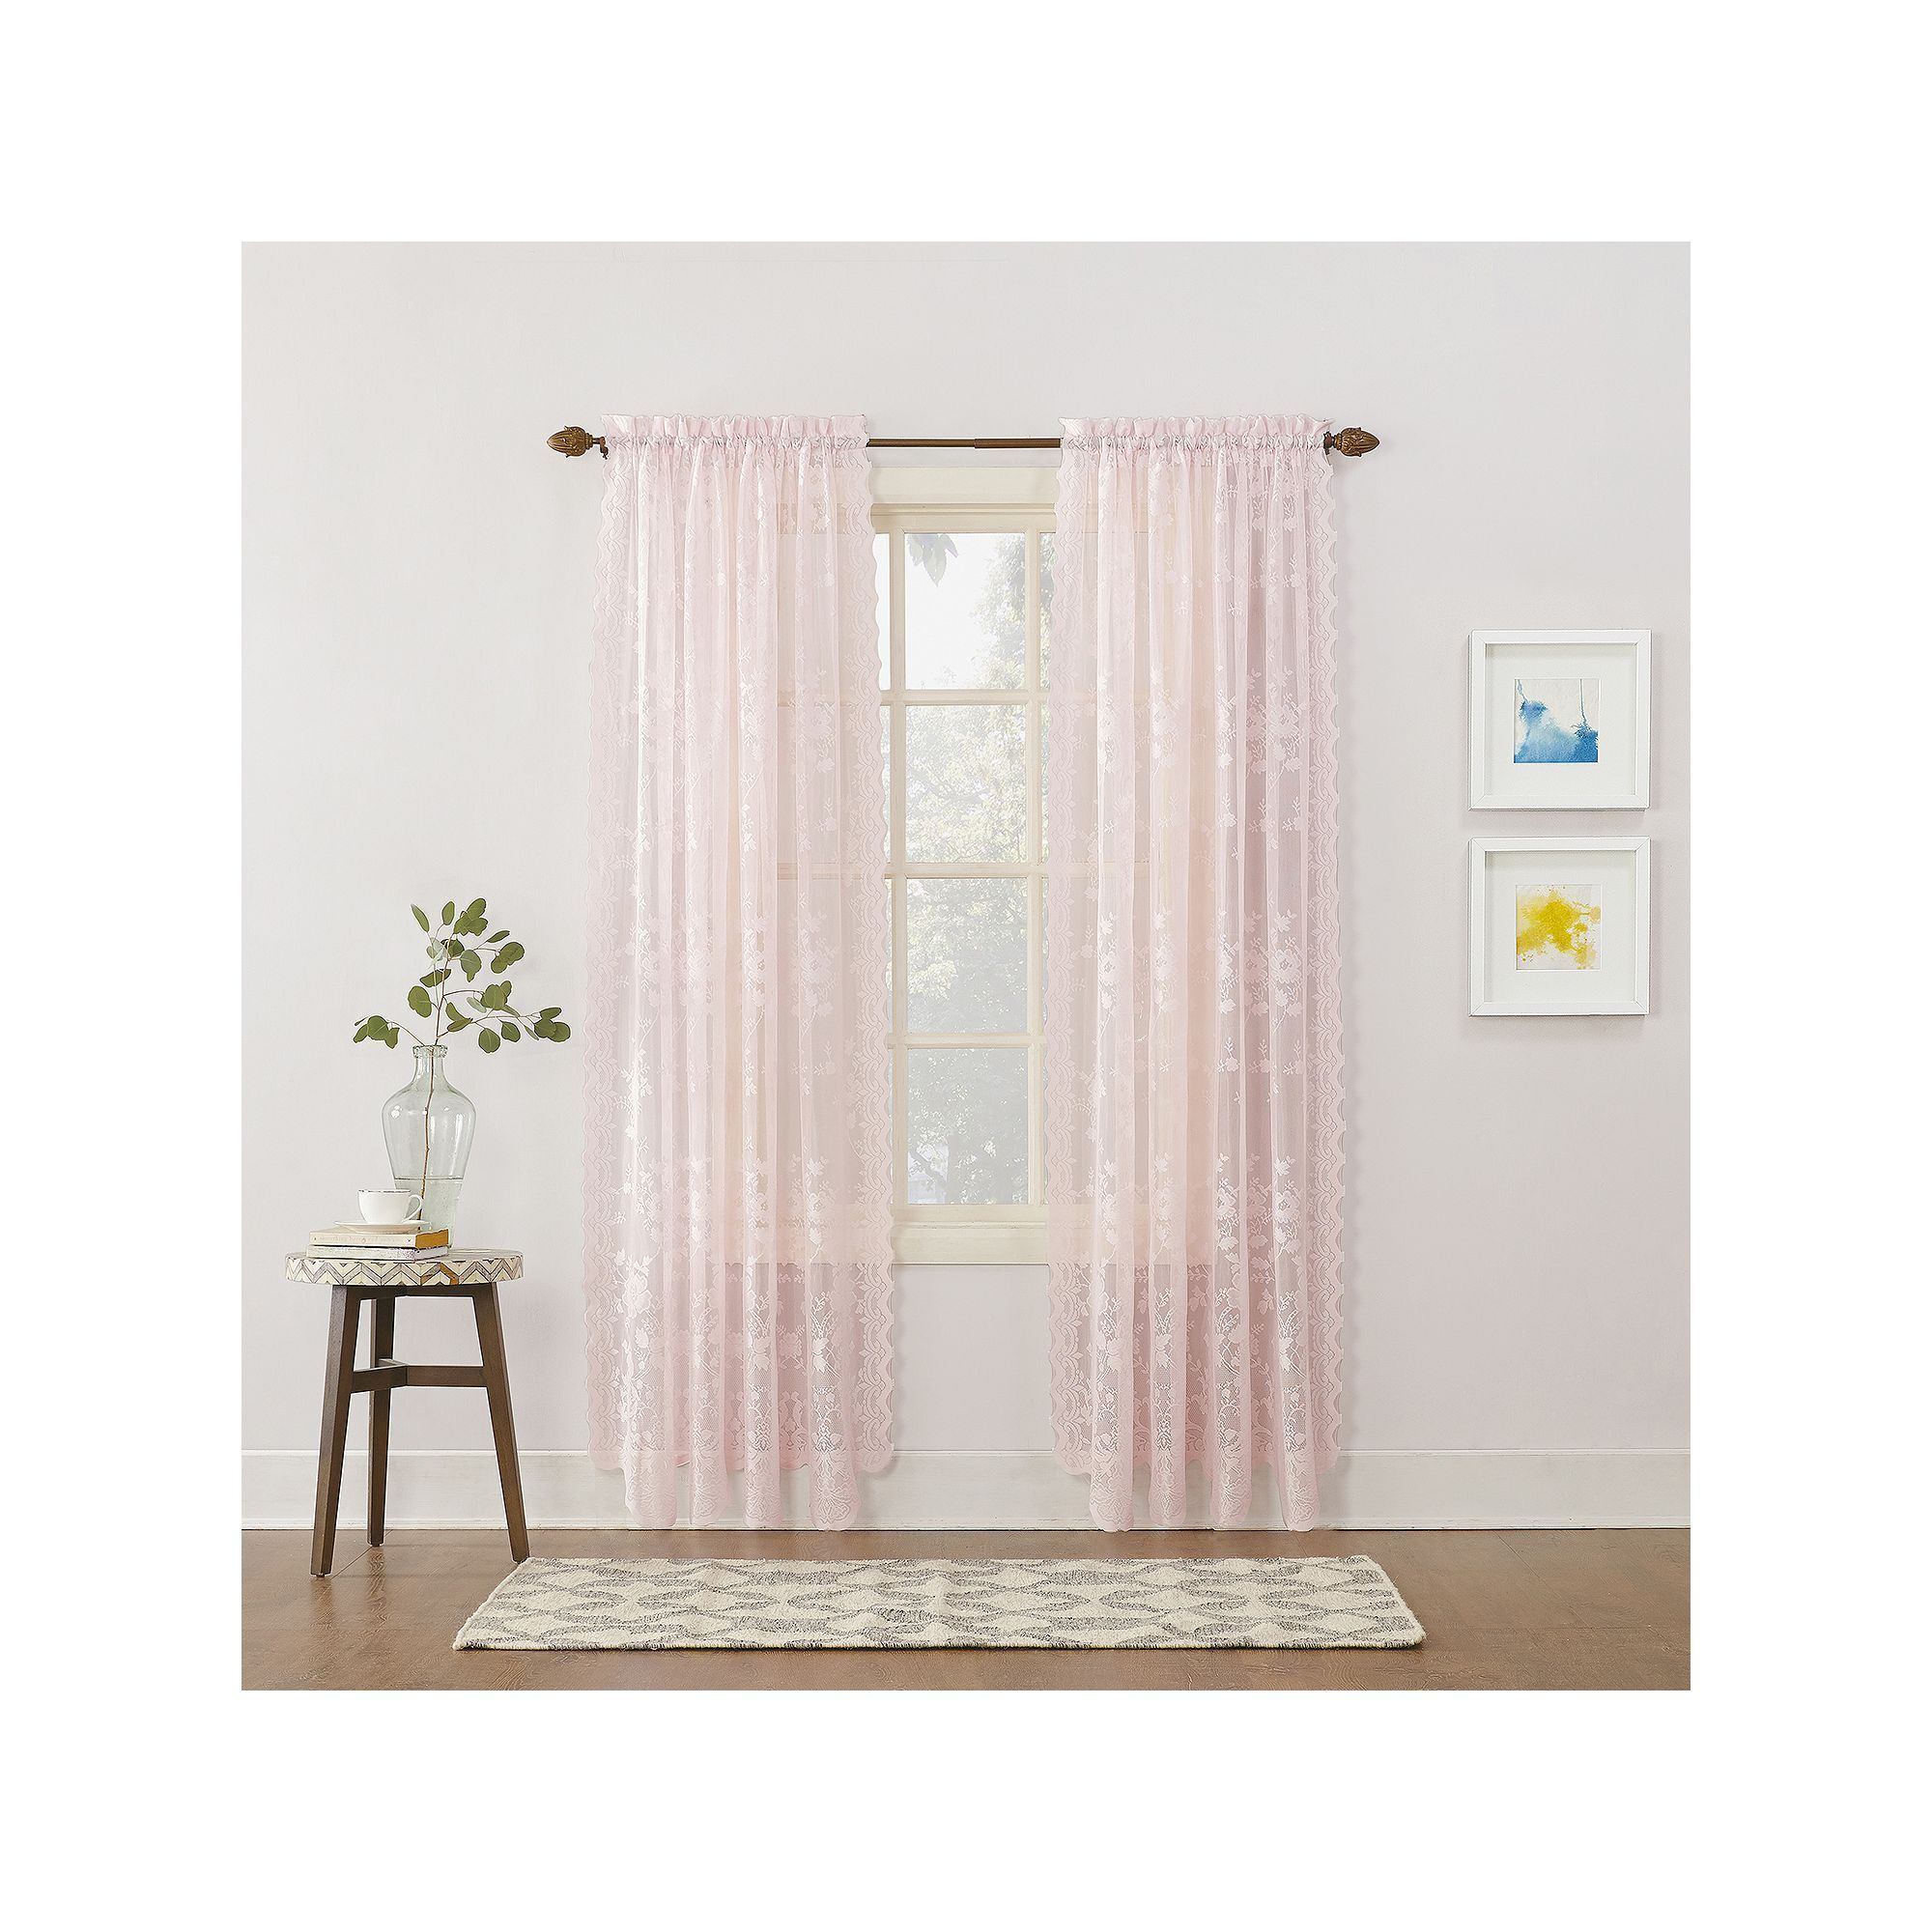 No 918 1 Panel Alison Floral Lace Sheer Window Curtain Throughout Alison Rod Pocket Lace Window Curtain Panels (View 2 of 20)